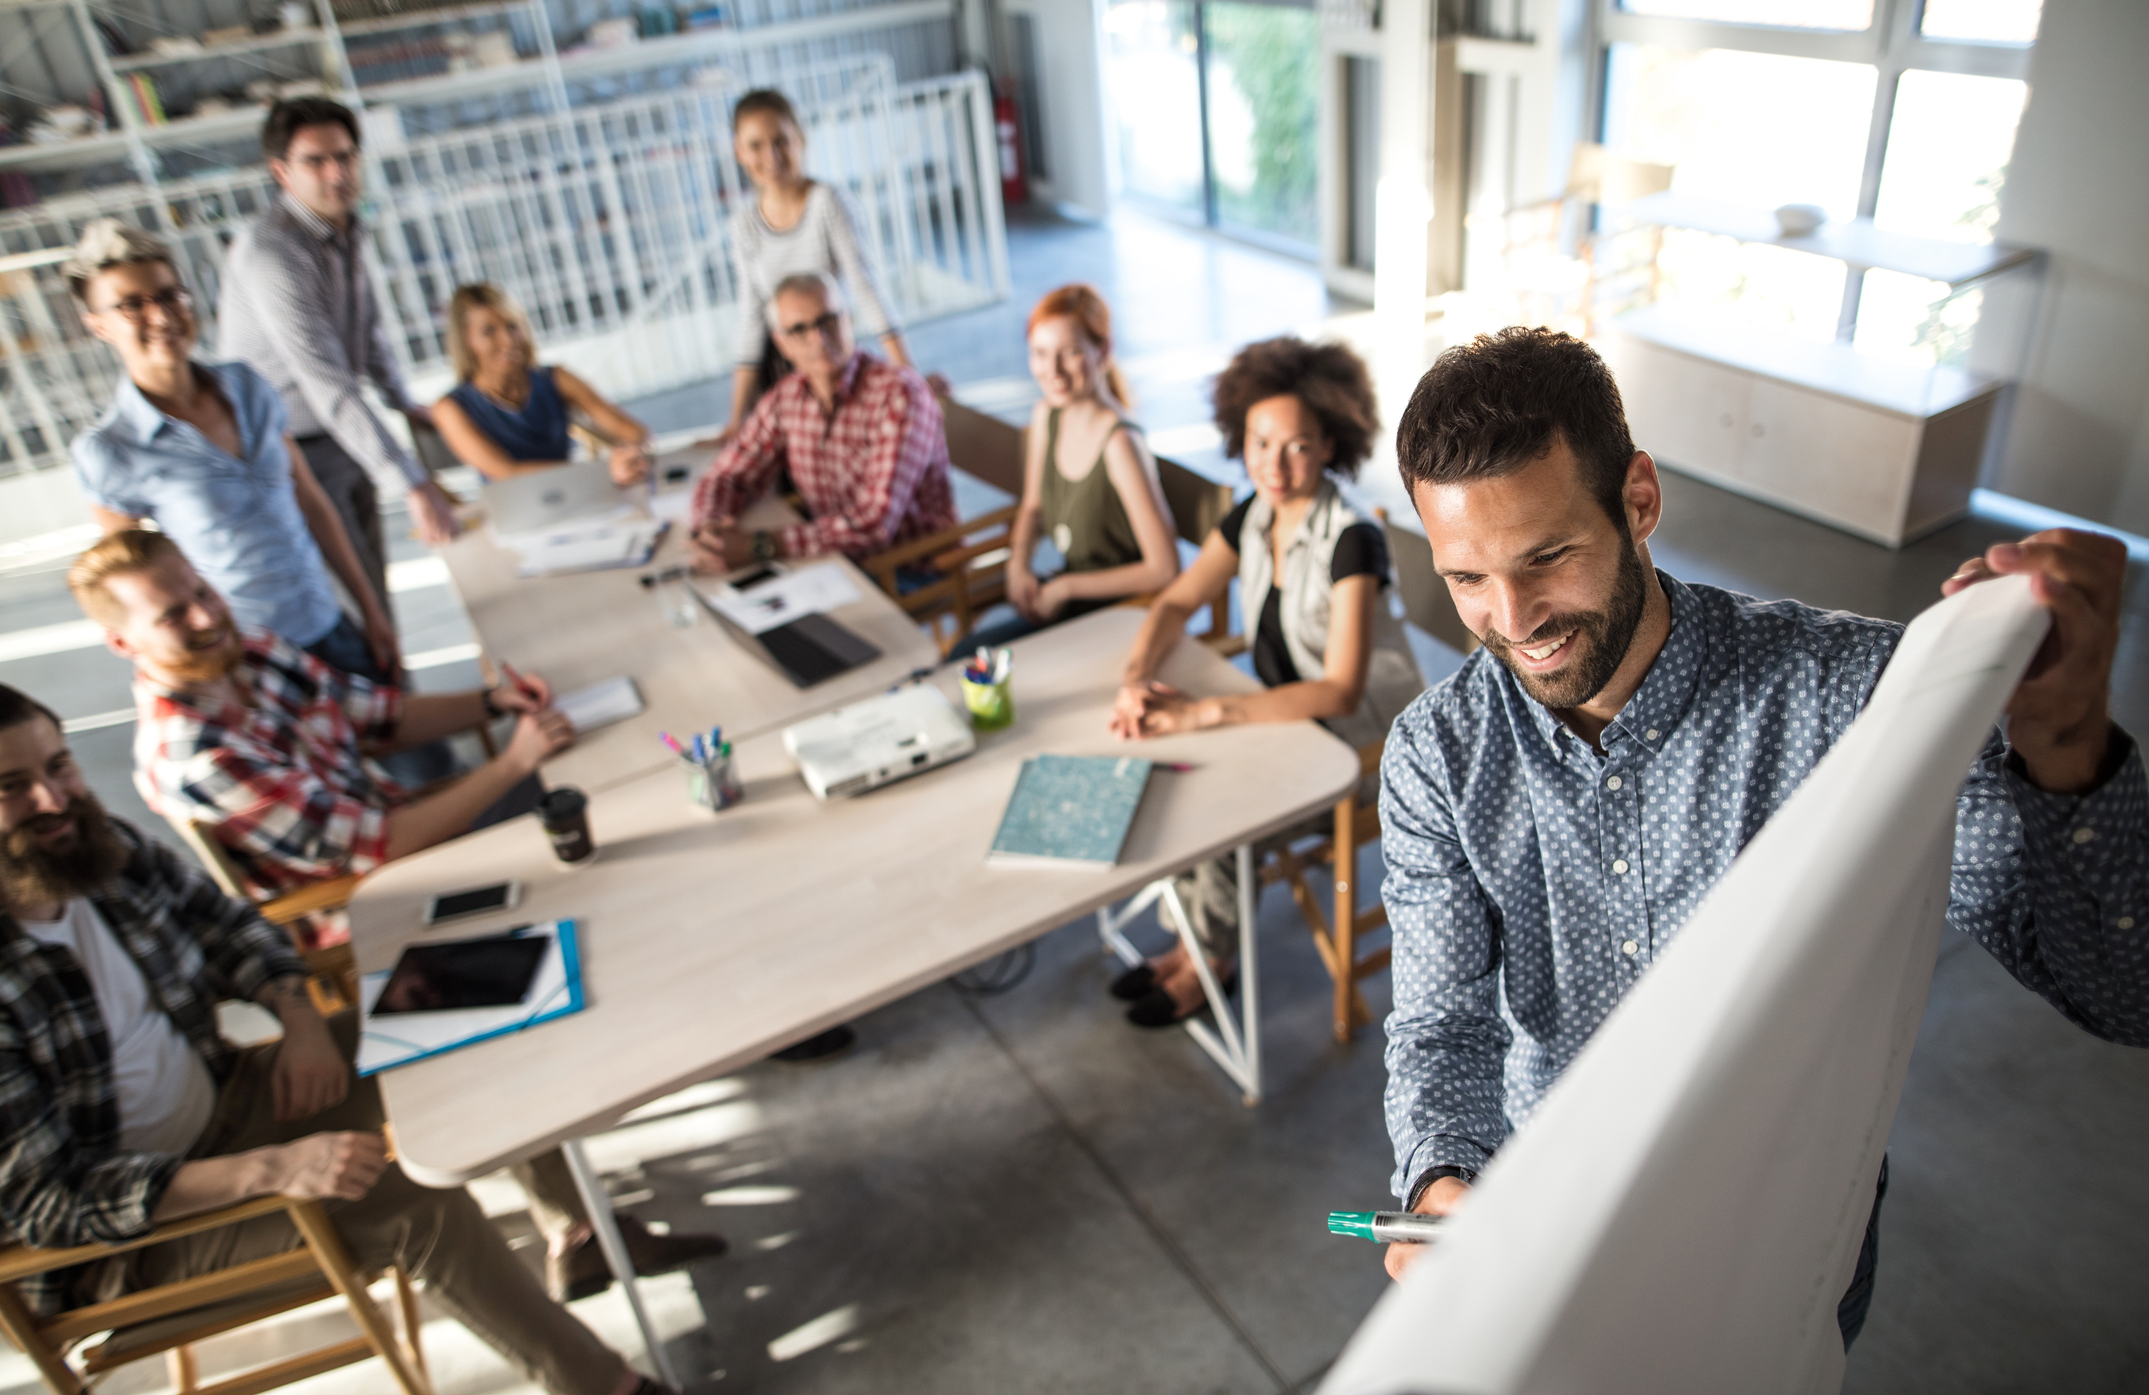 5 Smart tips for printing businesses looking to win new clients